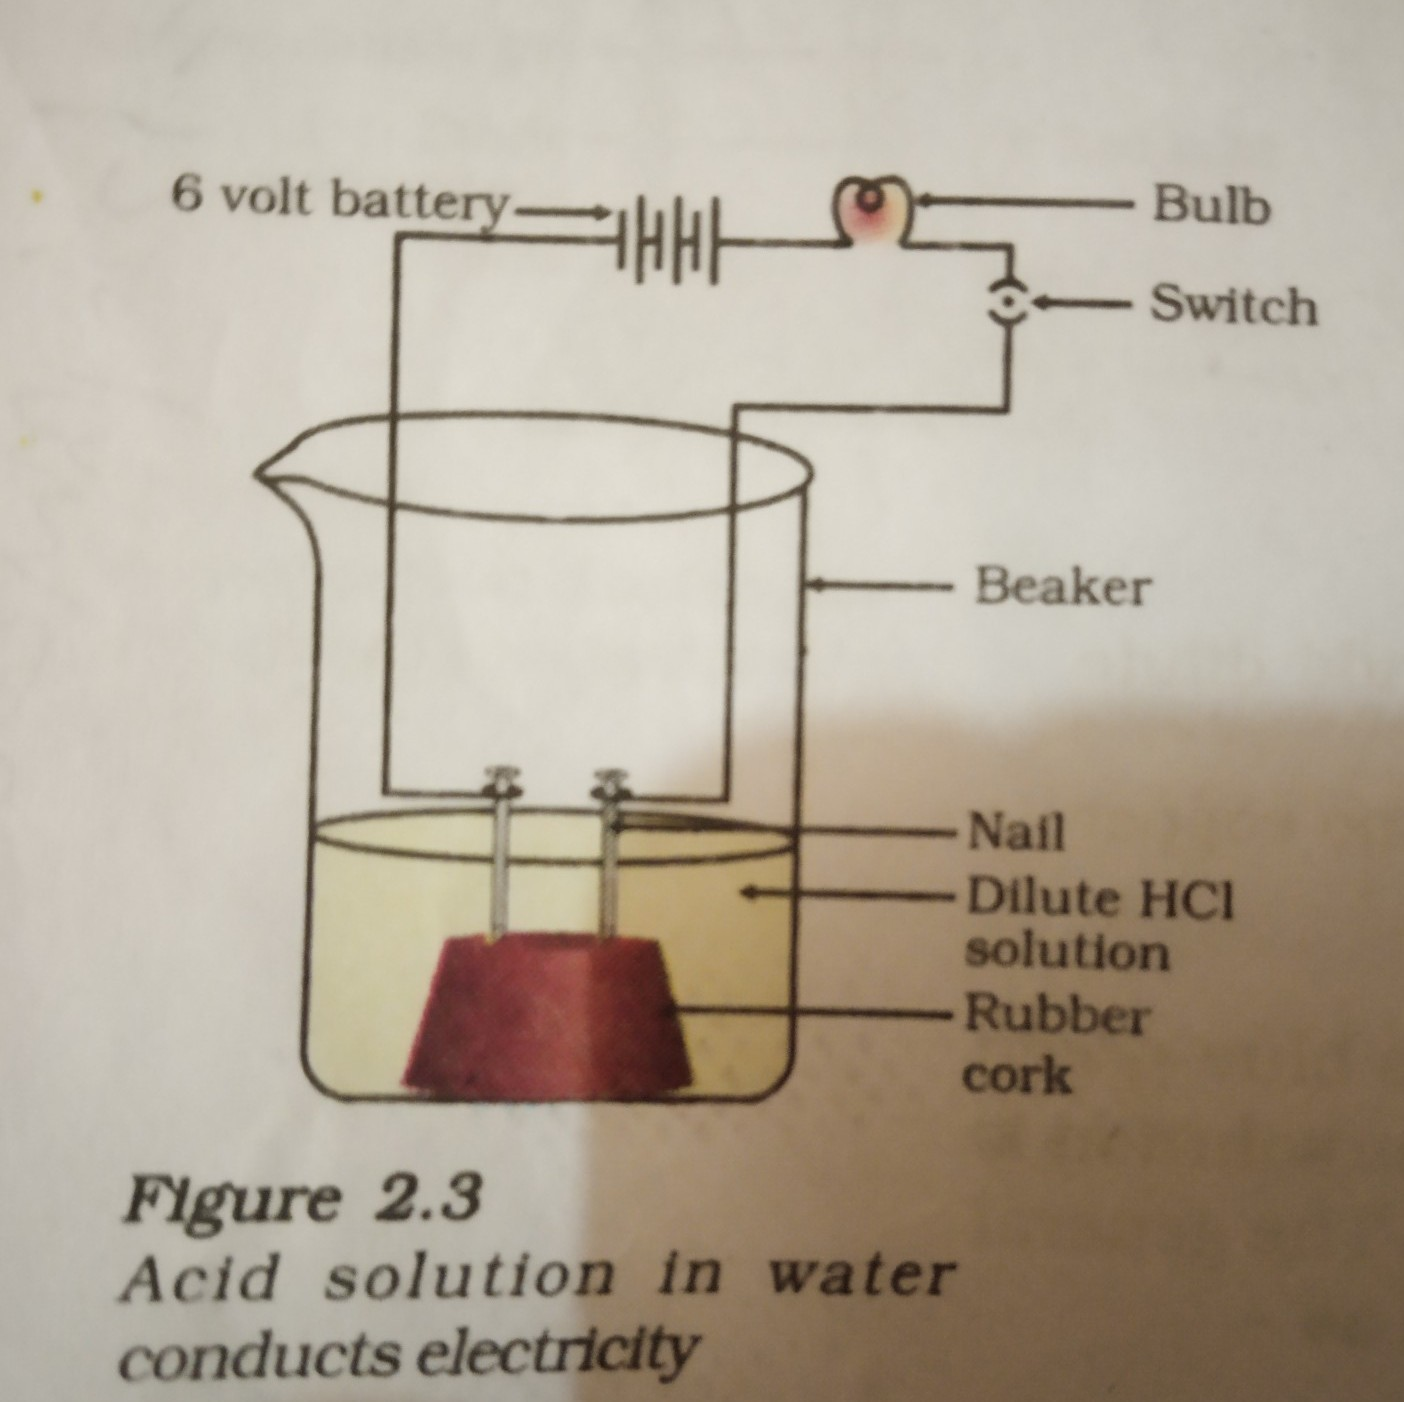 hight resolution of draw diagram of the apparatus used to demonstrate that acidic acid solution diagram